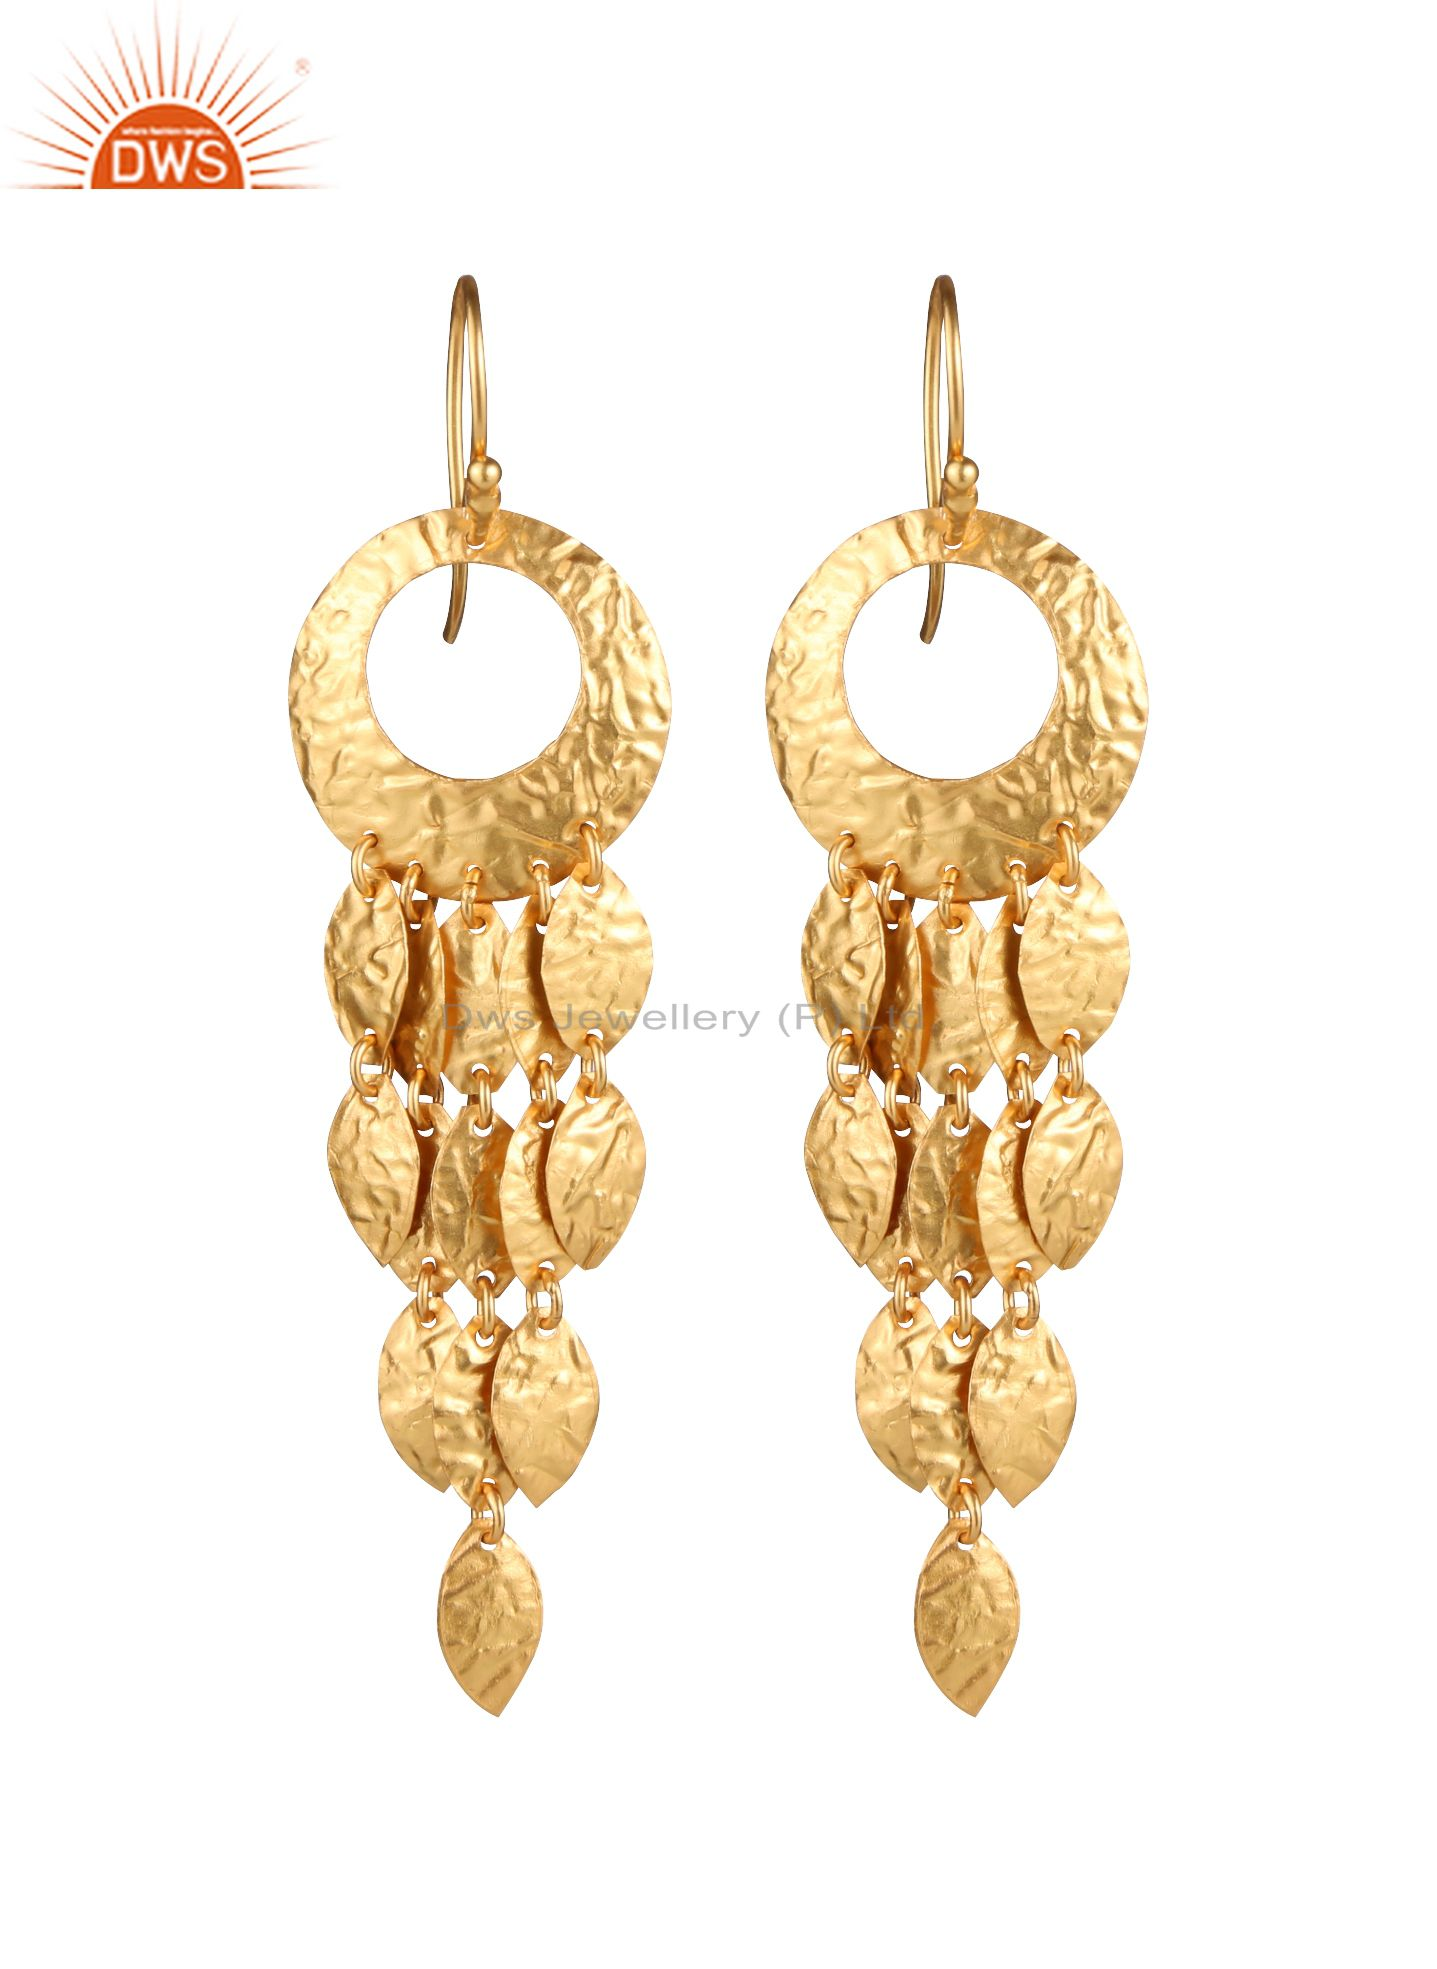 18K Yellow Gold Plated Sterling Silver Hammered Chandelier Earrings